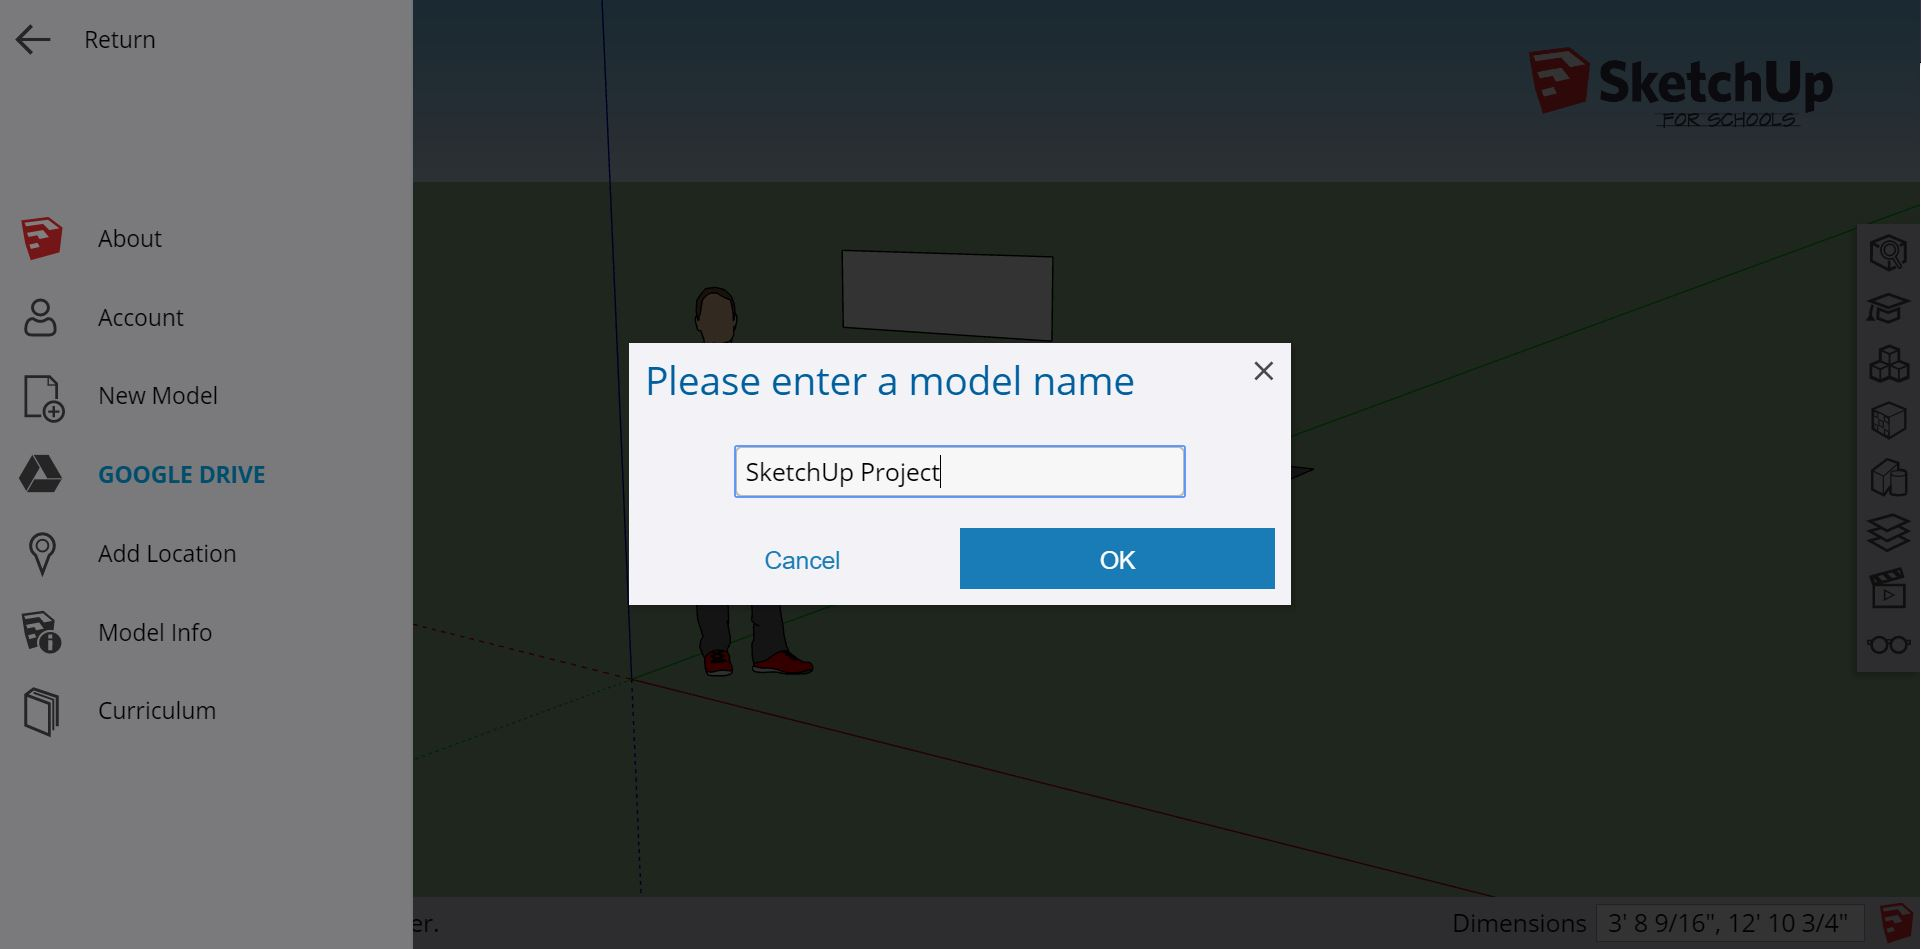 When you save a model, Google Drive prompts you for a model name